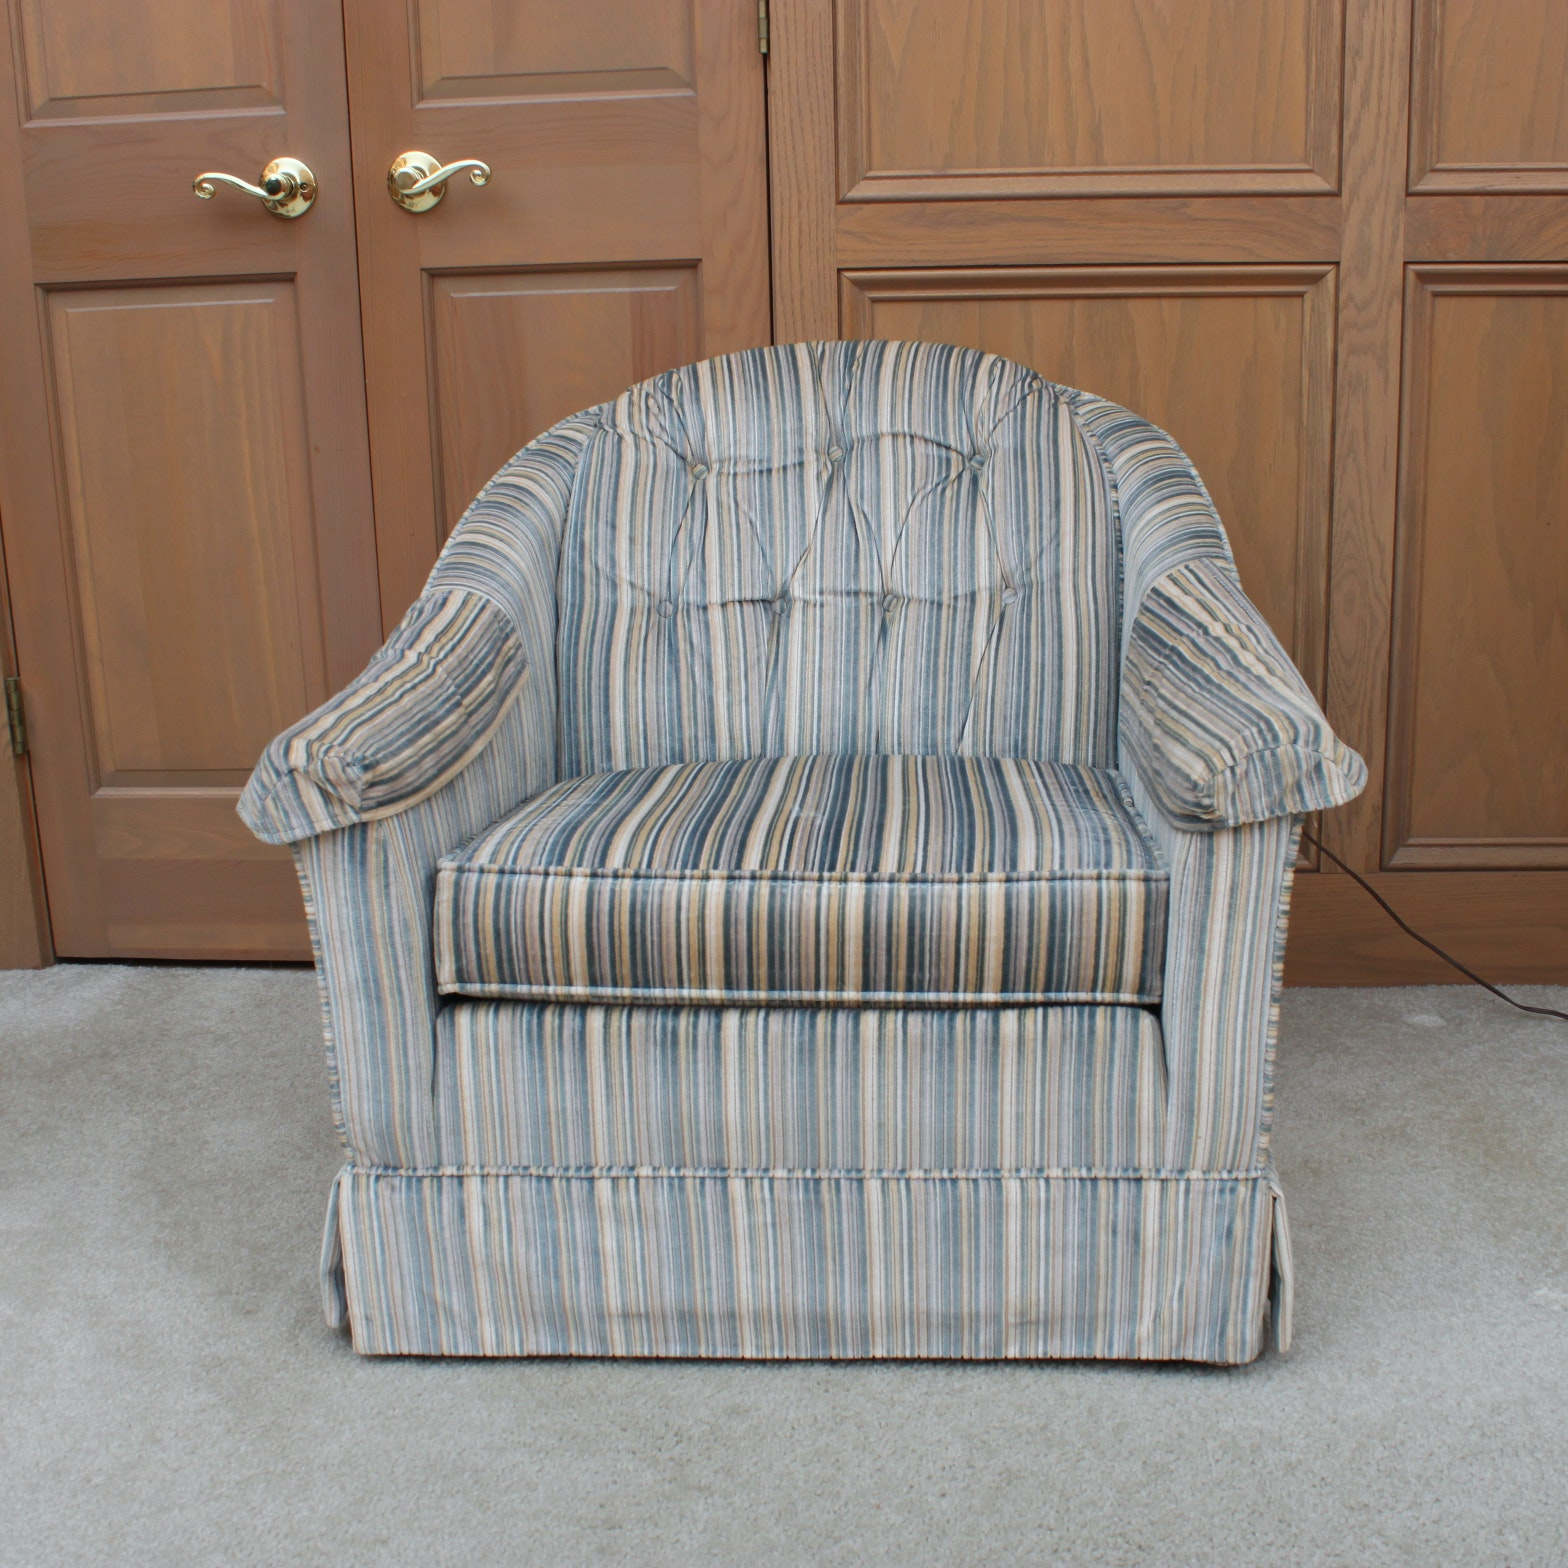 Vintage Striped Flexsteel Armchair